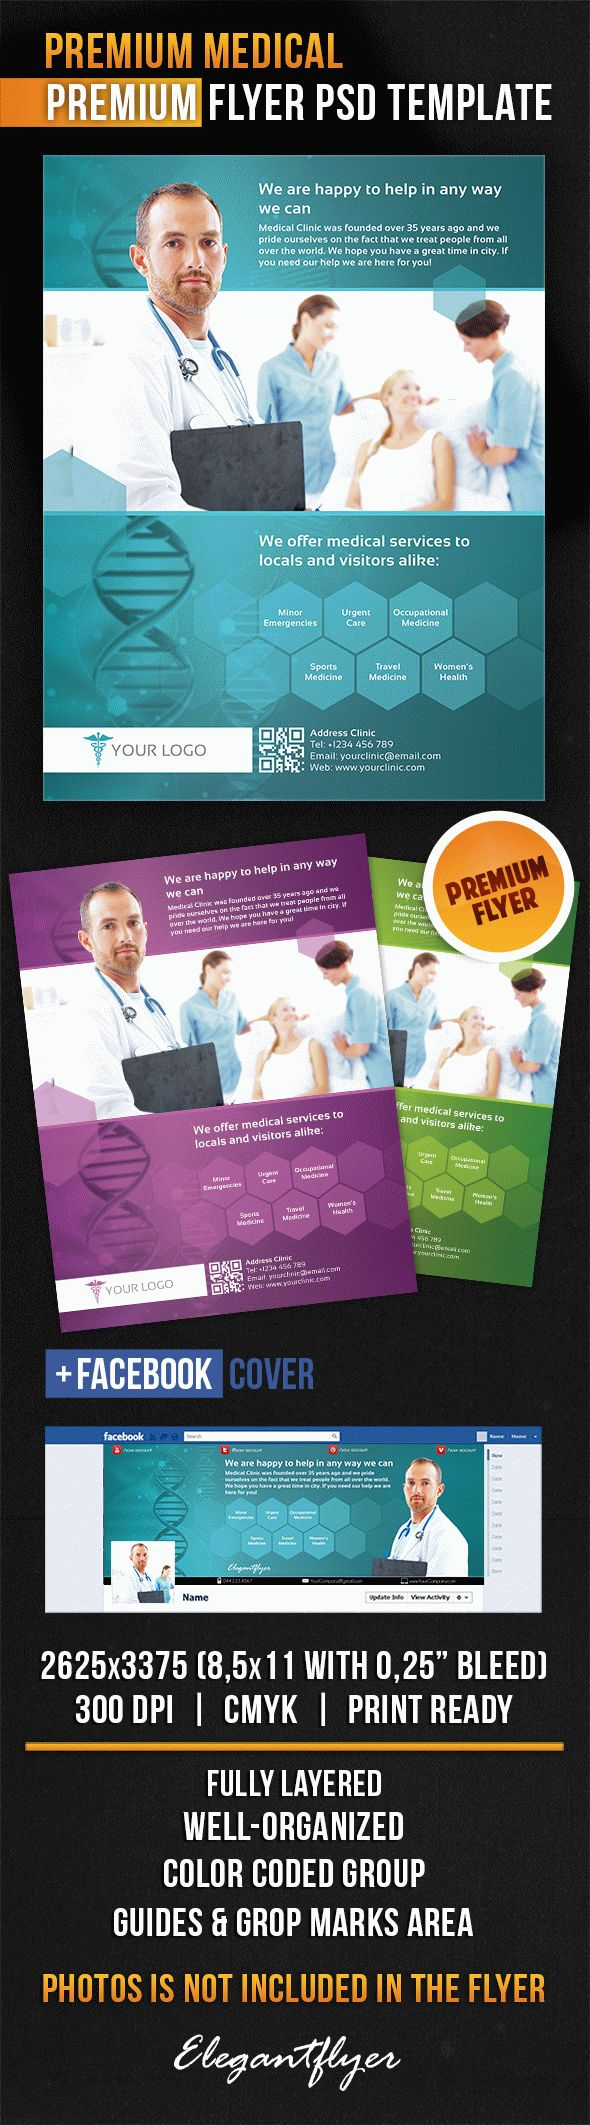 Premium Medical Flyer PSD Template Facebook Cover By - Free medical brochure templates